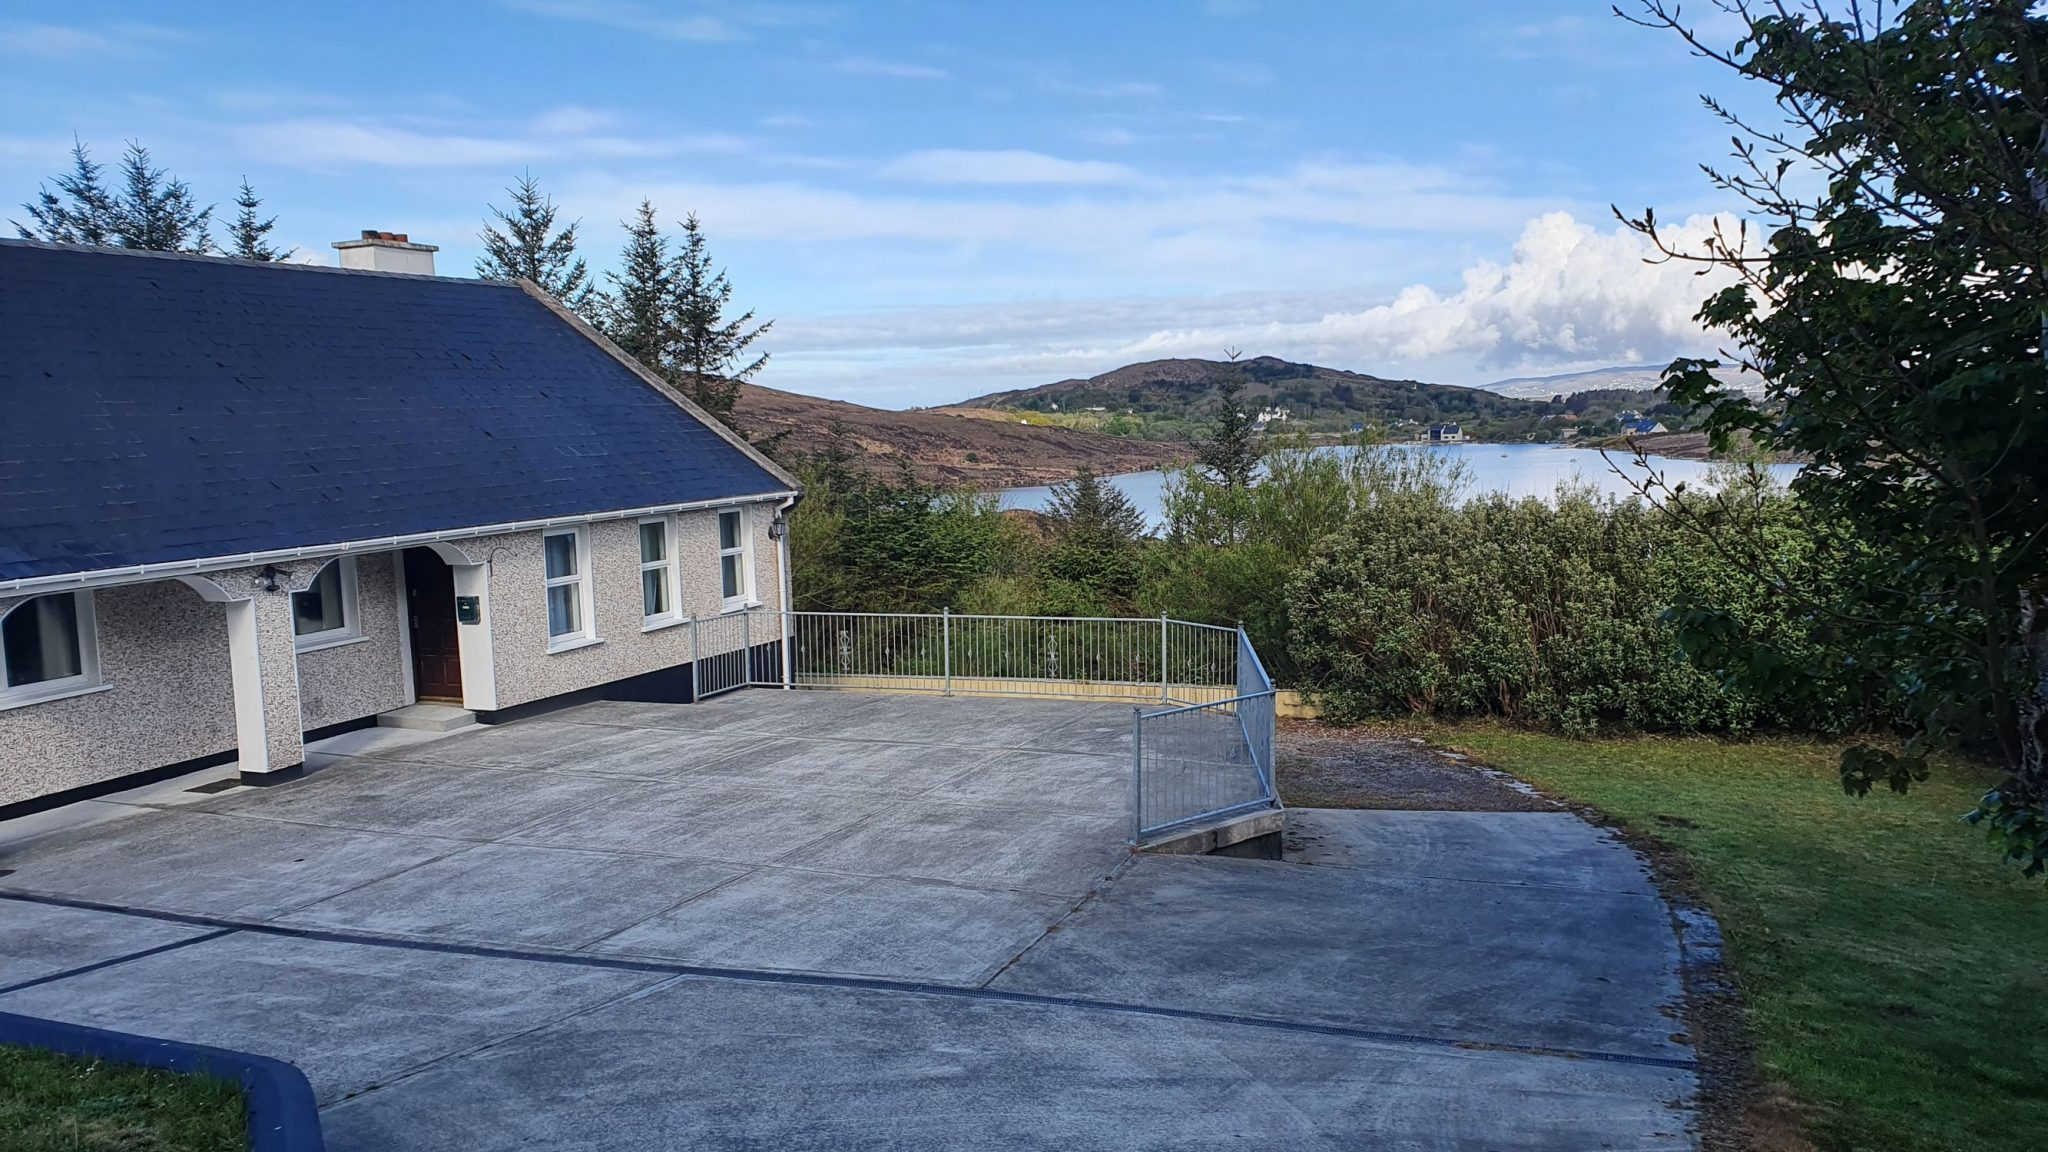 Diamond, Dungloe, Co. Donegal – 4 Bedroom Bungalow with views of Tubberkeen Lake.